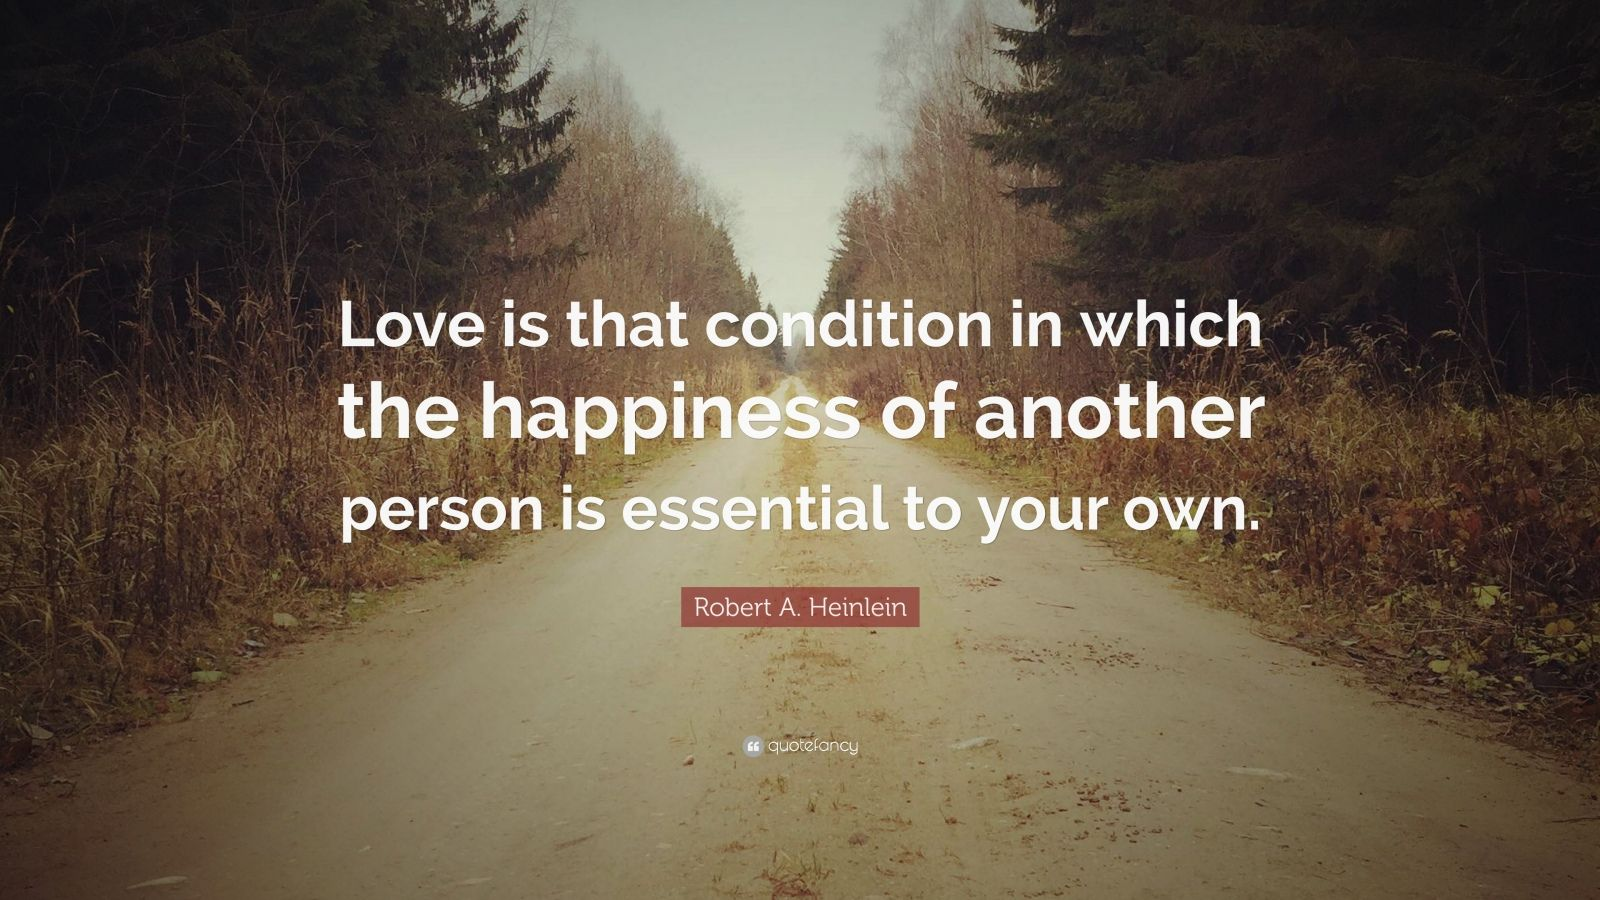 Nietzsche Quotes Wallpaper Robert A Heinlein Quote Love Is That Condition In Which